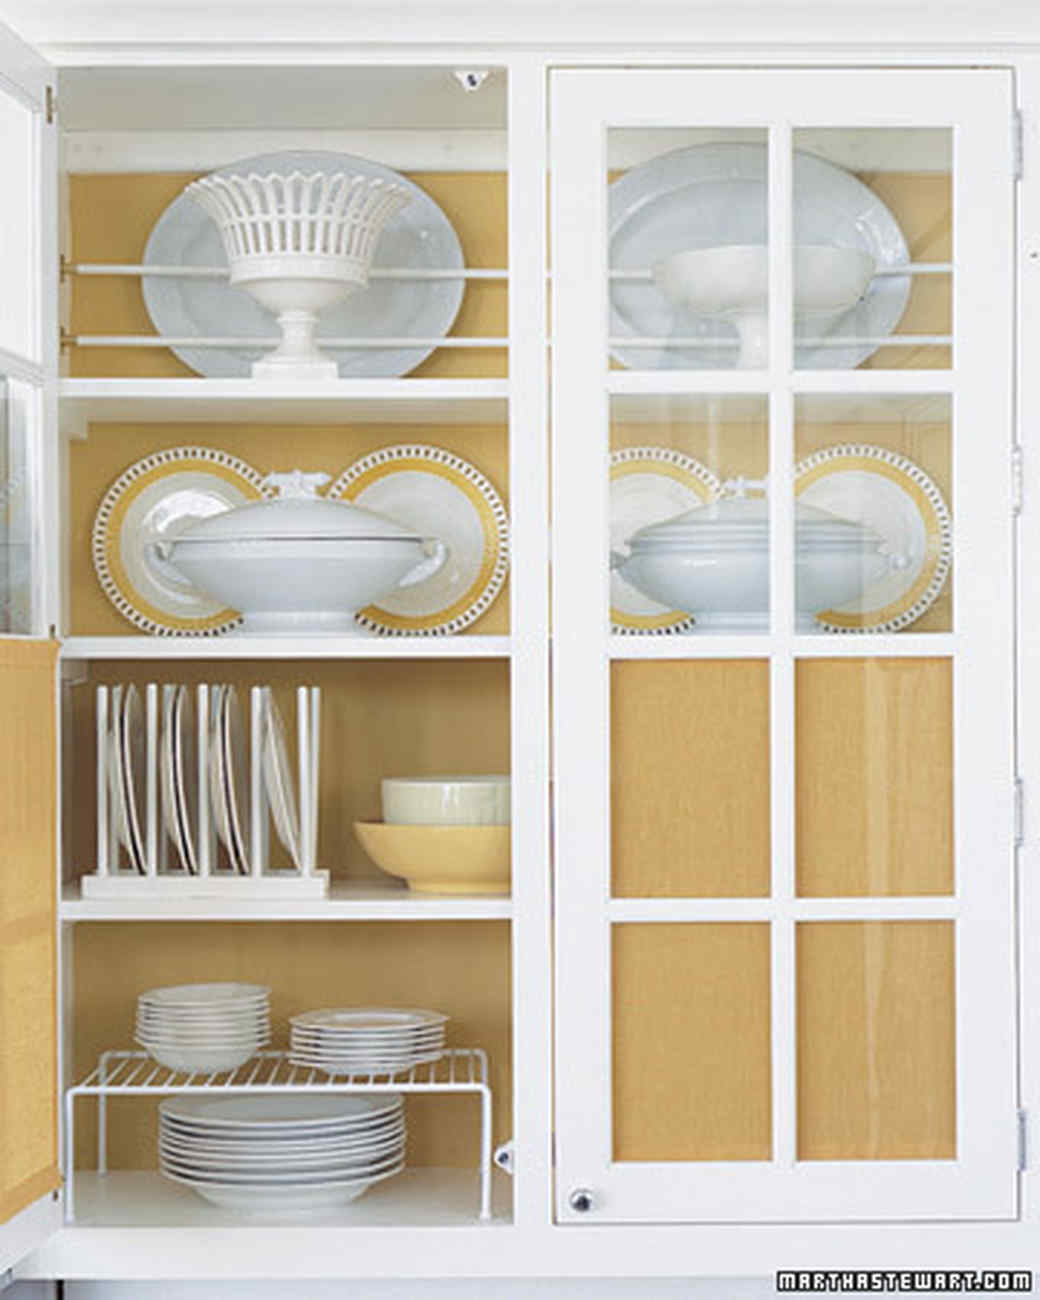 Small Kitchen Storage Ideas For A More Efficient Space Martha Stewart - How to organize kitchen cabinets martha stewart